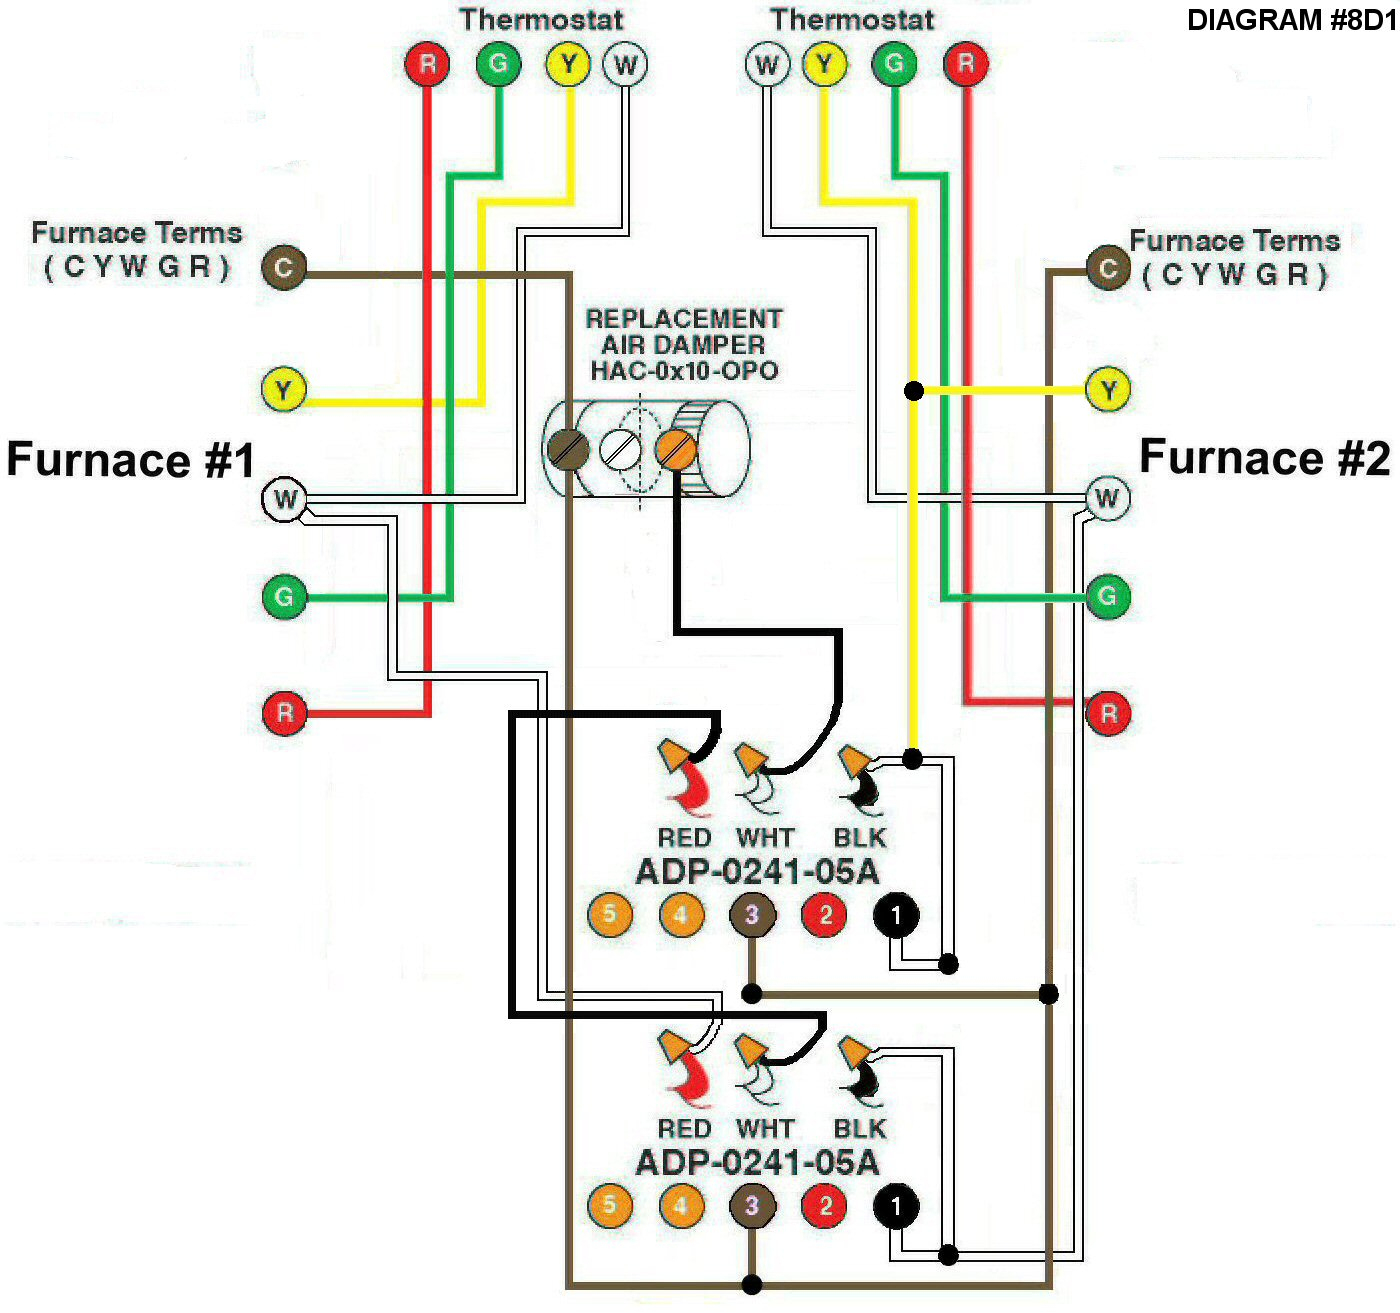 York Air Conditioner Diagram - Wiring Diagrams Hubs - York Air Handler Wiring Diagram